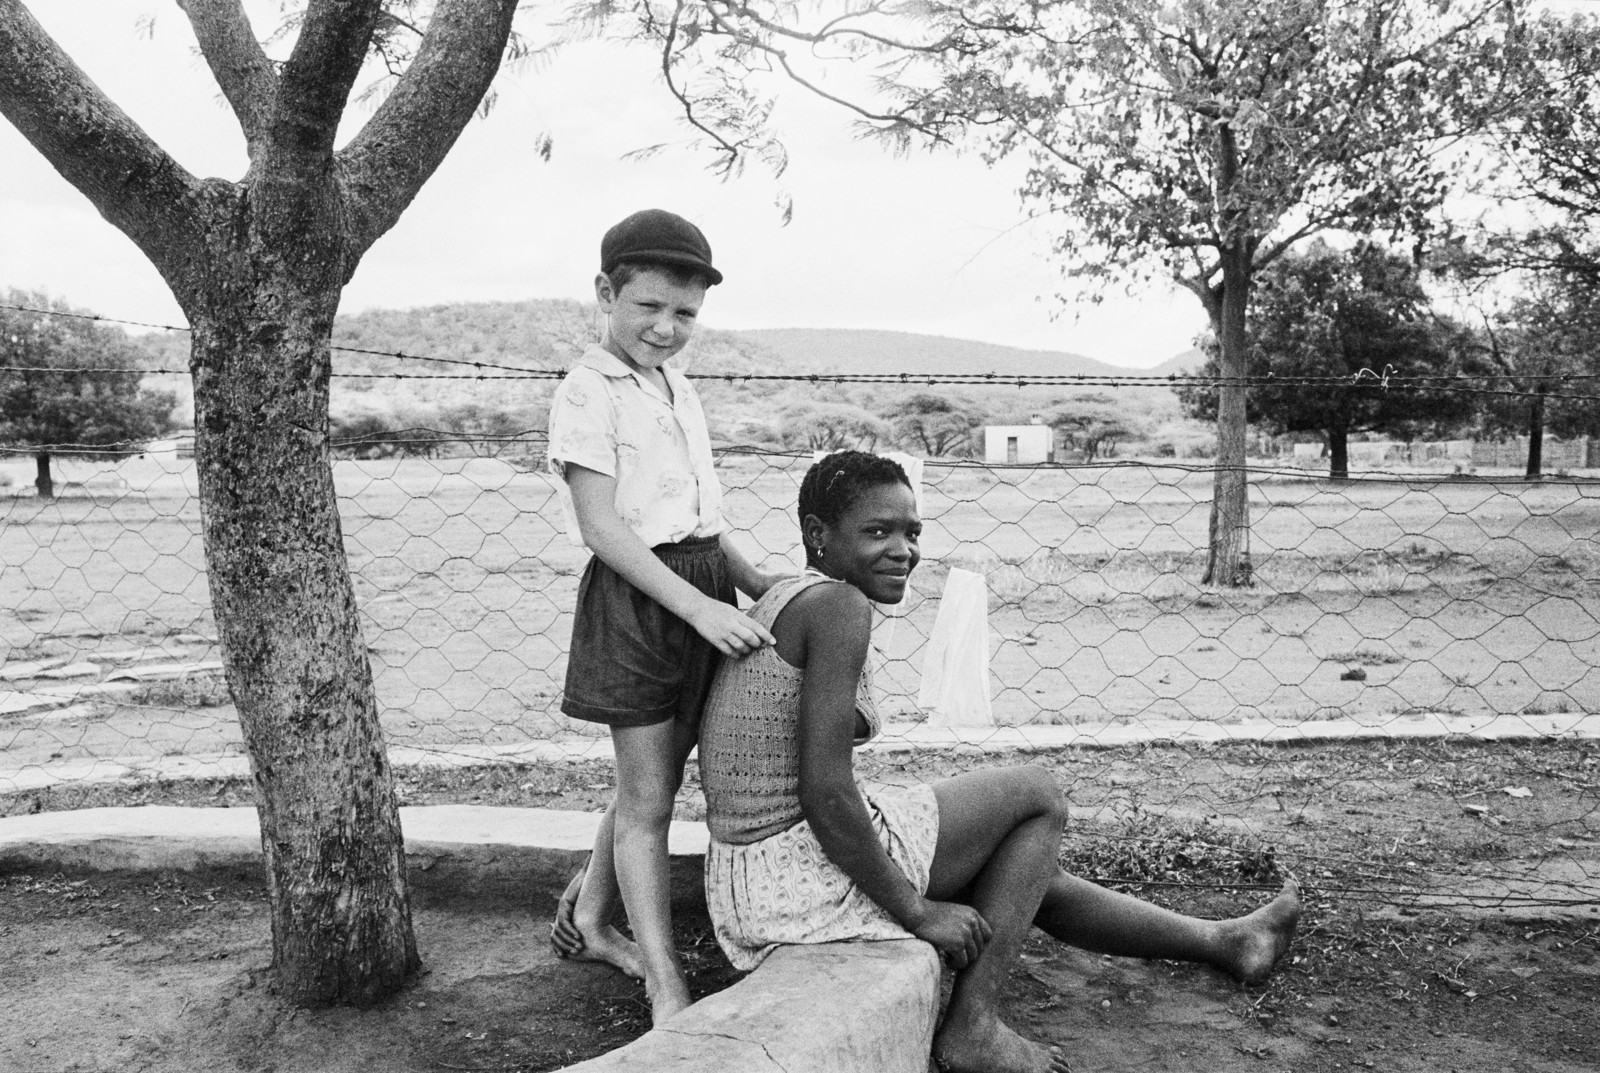 A farmer's son with his nursemaid, Heimweeberg, Nietverdiend, 1964 image